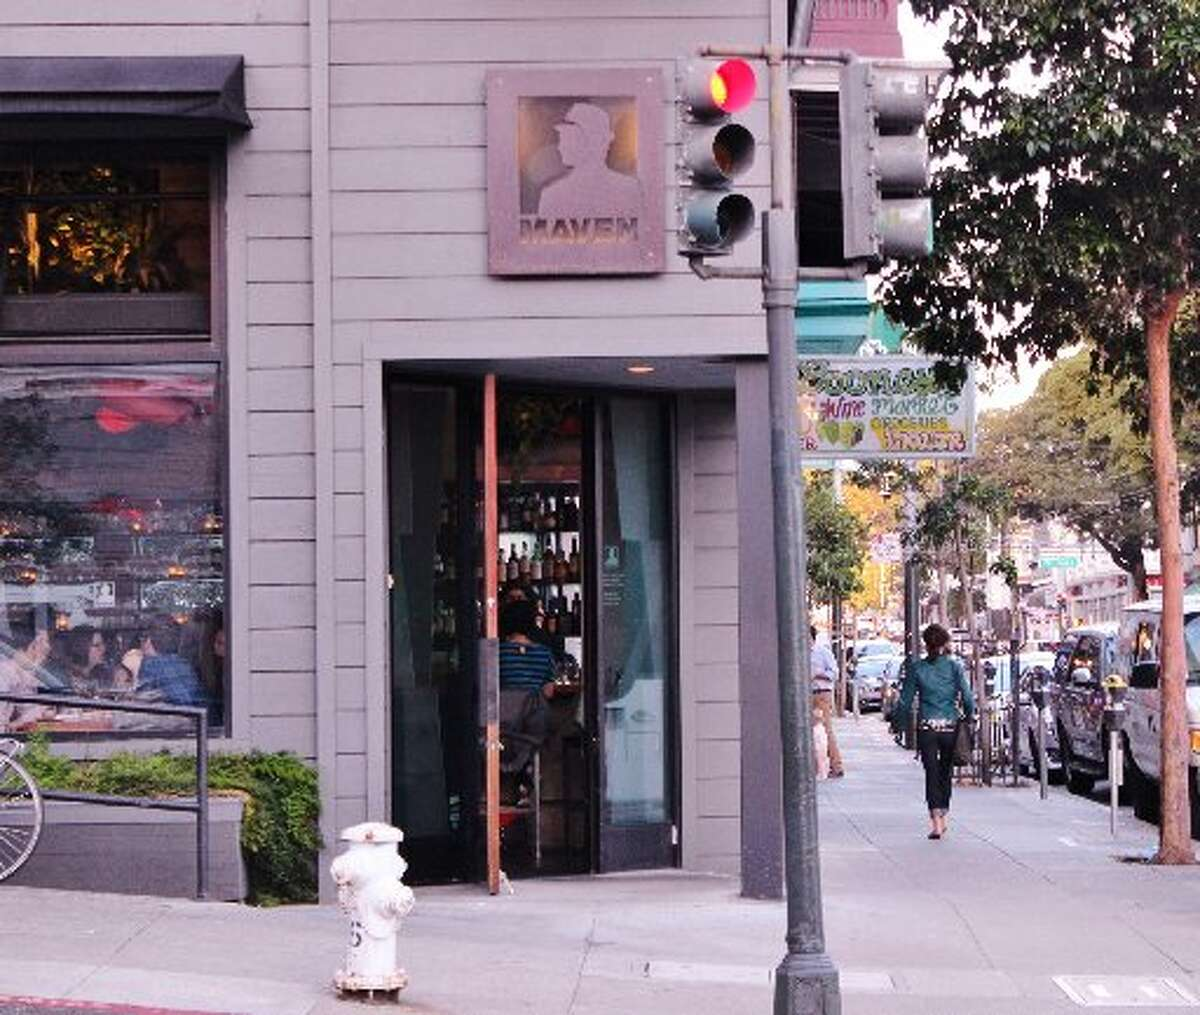 Maven opened in 2011 at the corner of Haight and Steiner.